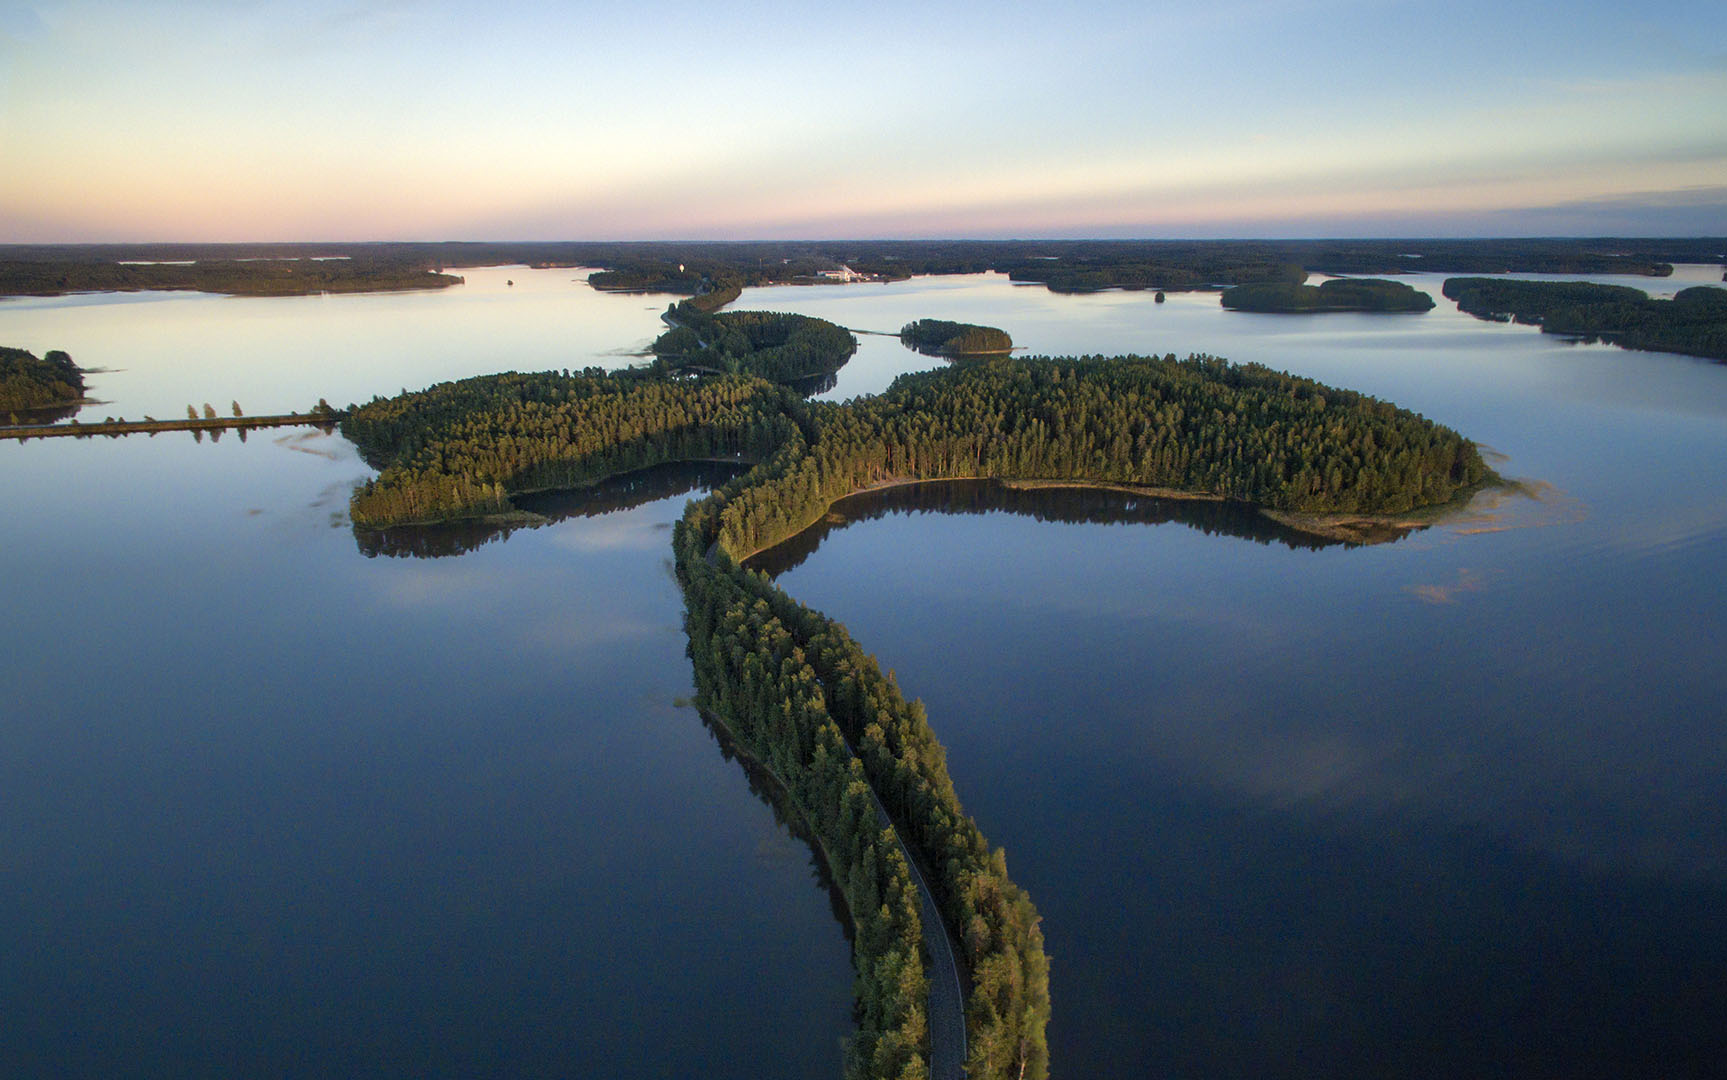 Punkaharju, one of the most beautiful spots in Finland. Photo: Jussi Silvennoinen